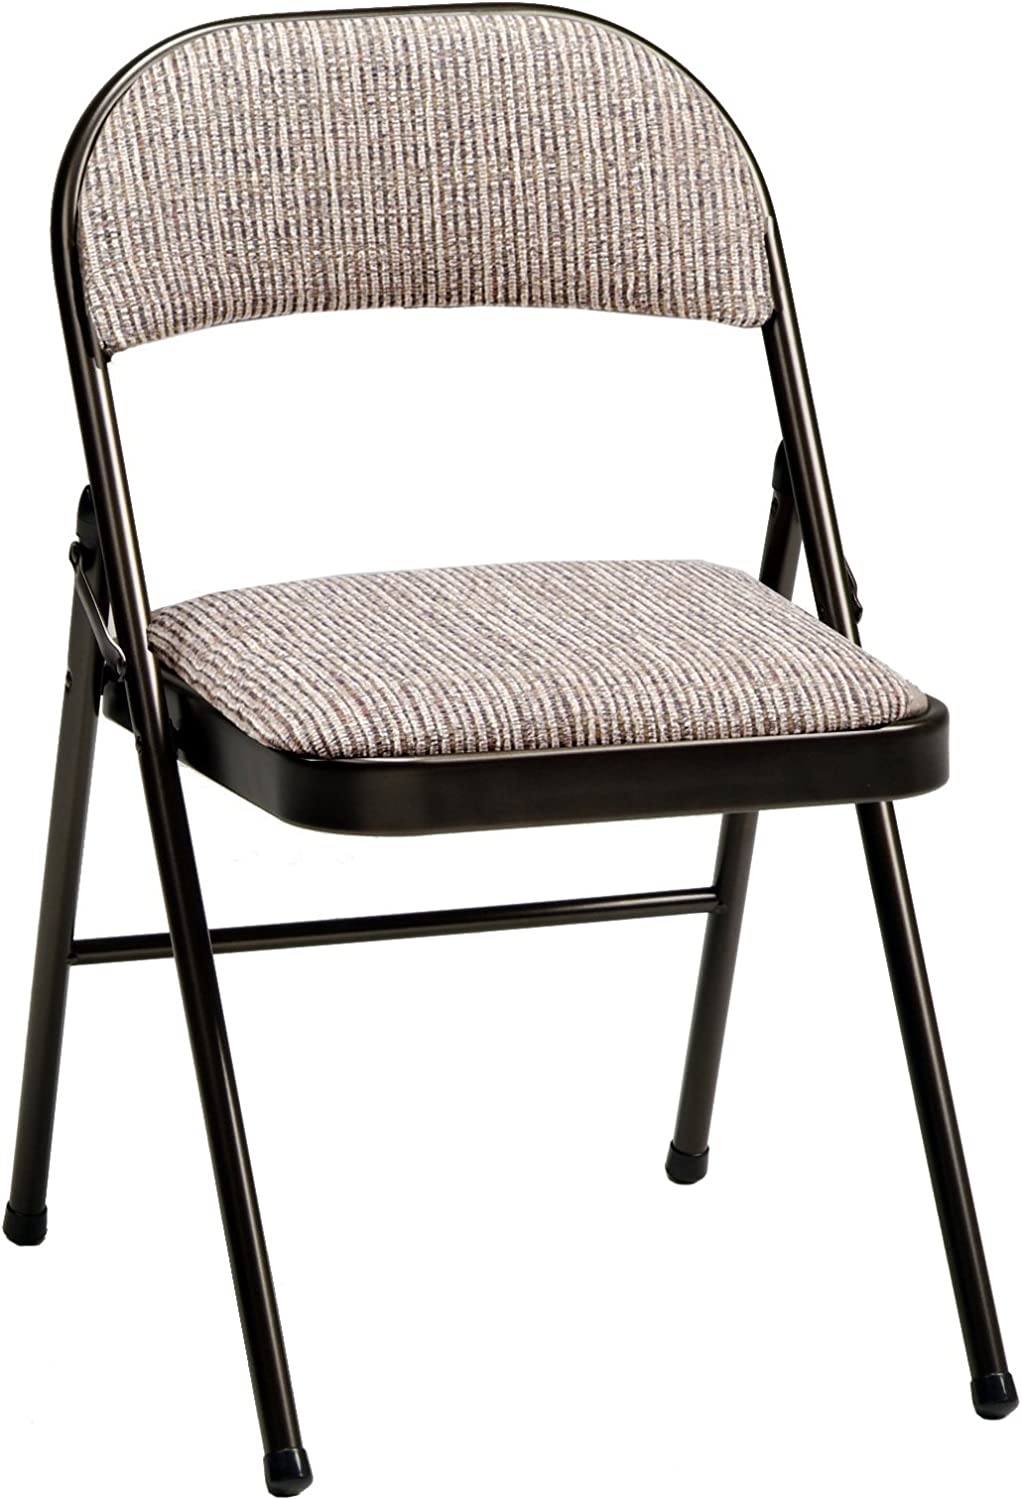 Amazon Com Meco 4 Pack Deluxe Fabric Padded Folding Chair Cinnabar Frame And Motif Fabric Seat And Back Furniture Decor